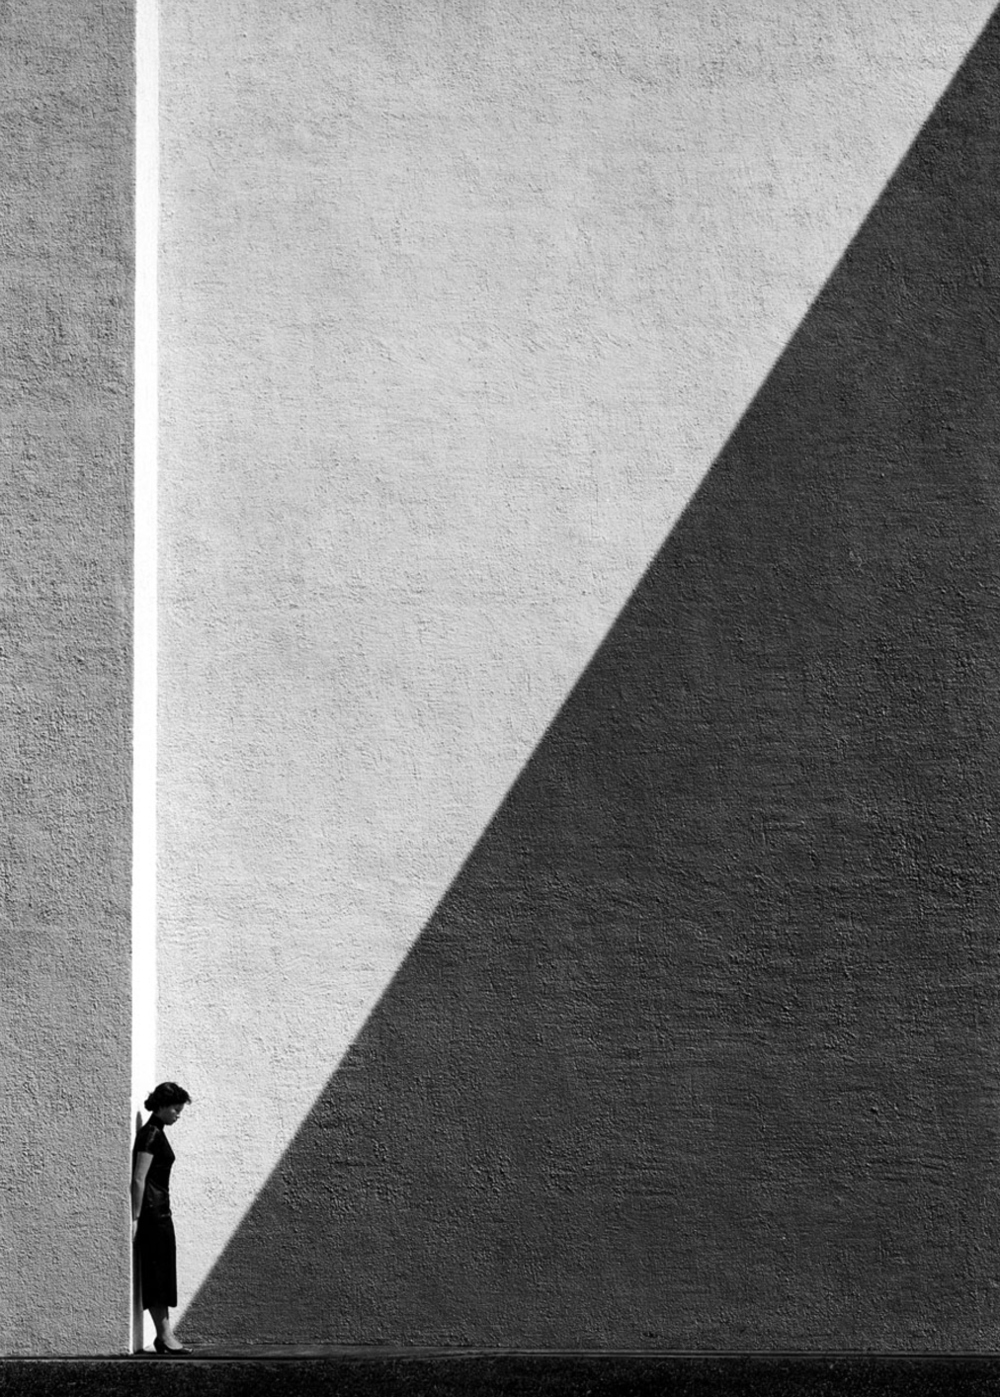 Ho Fan. Approaching Shadow, 1954